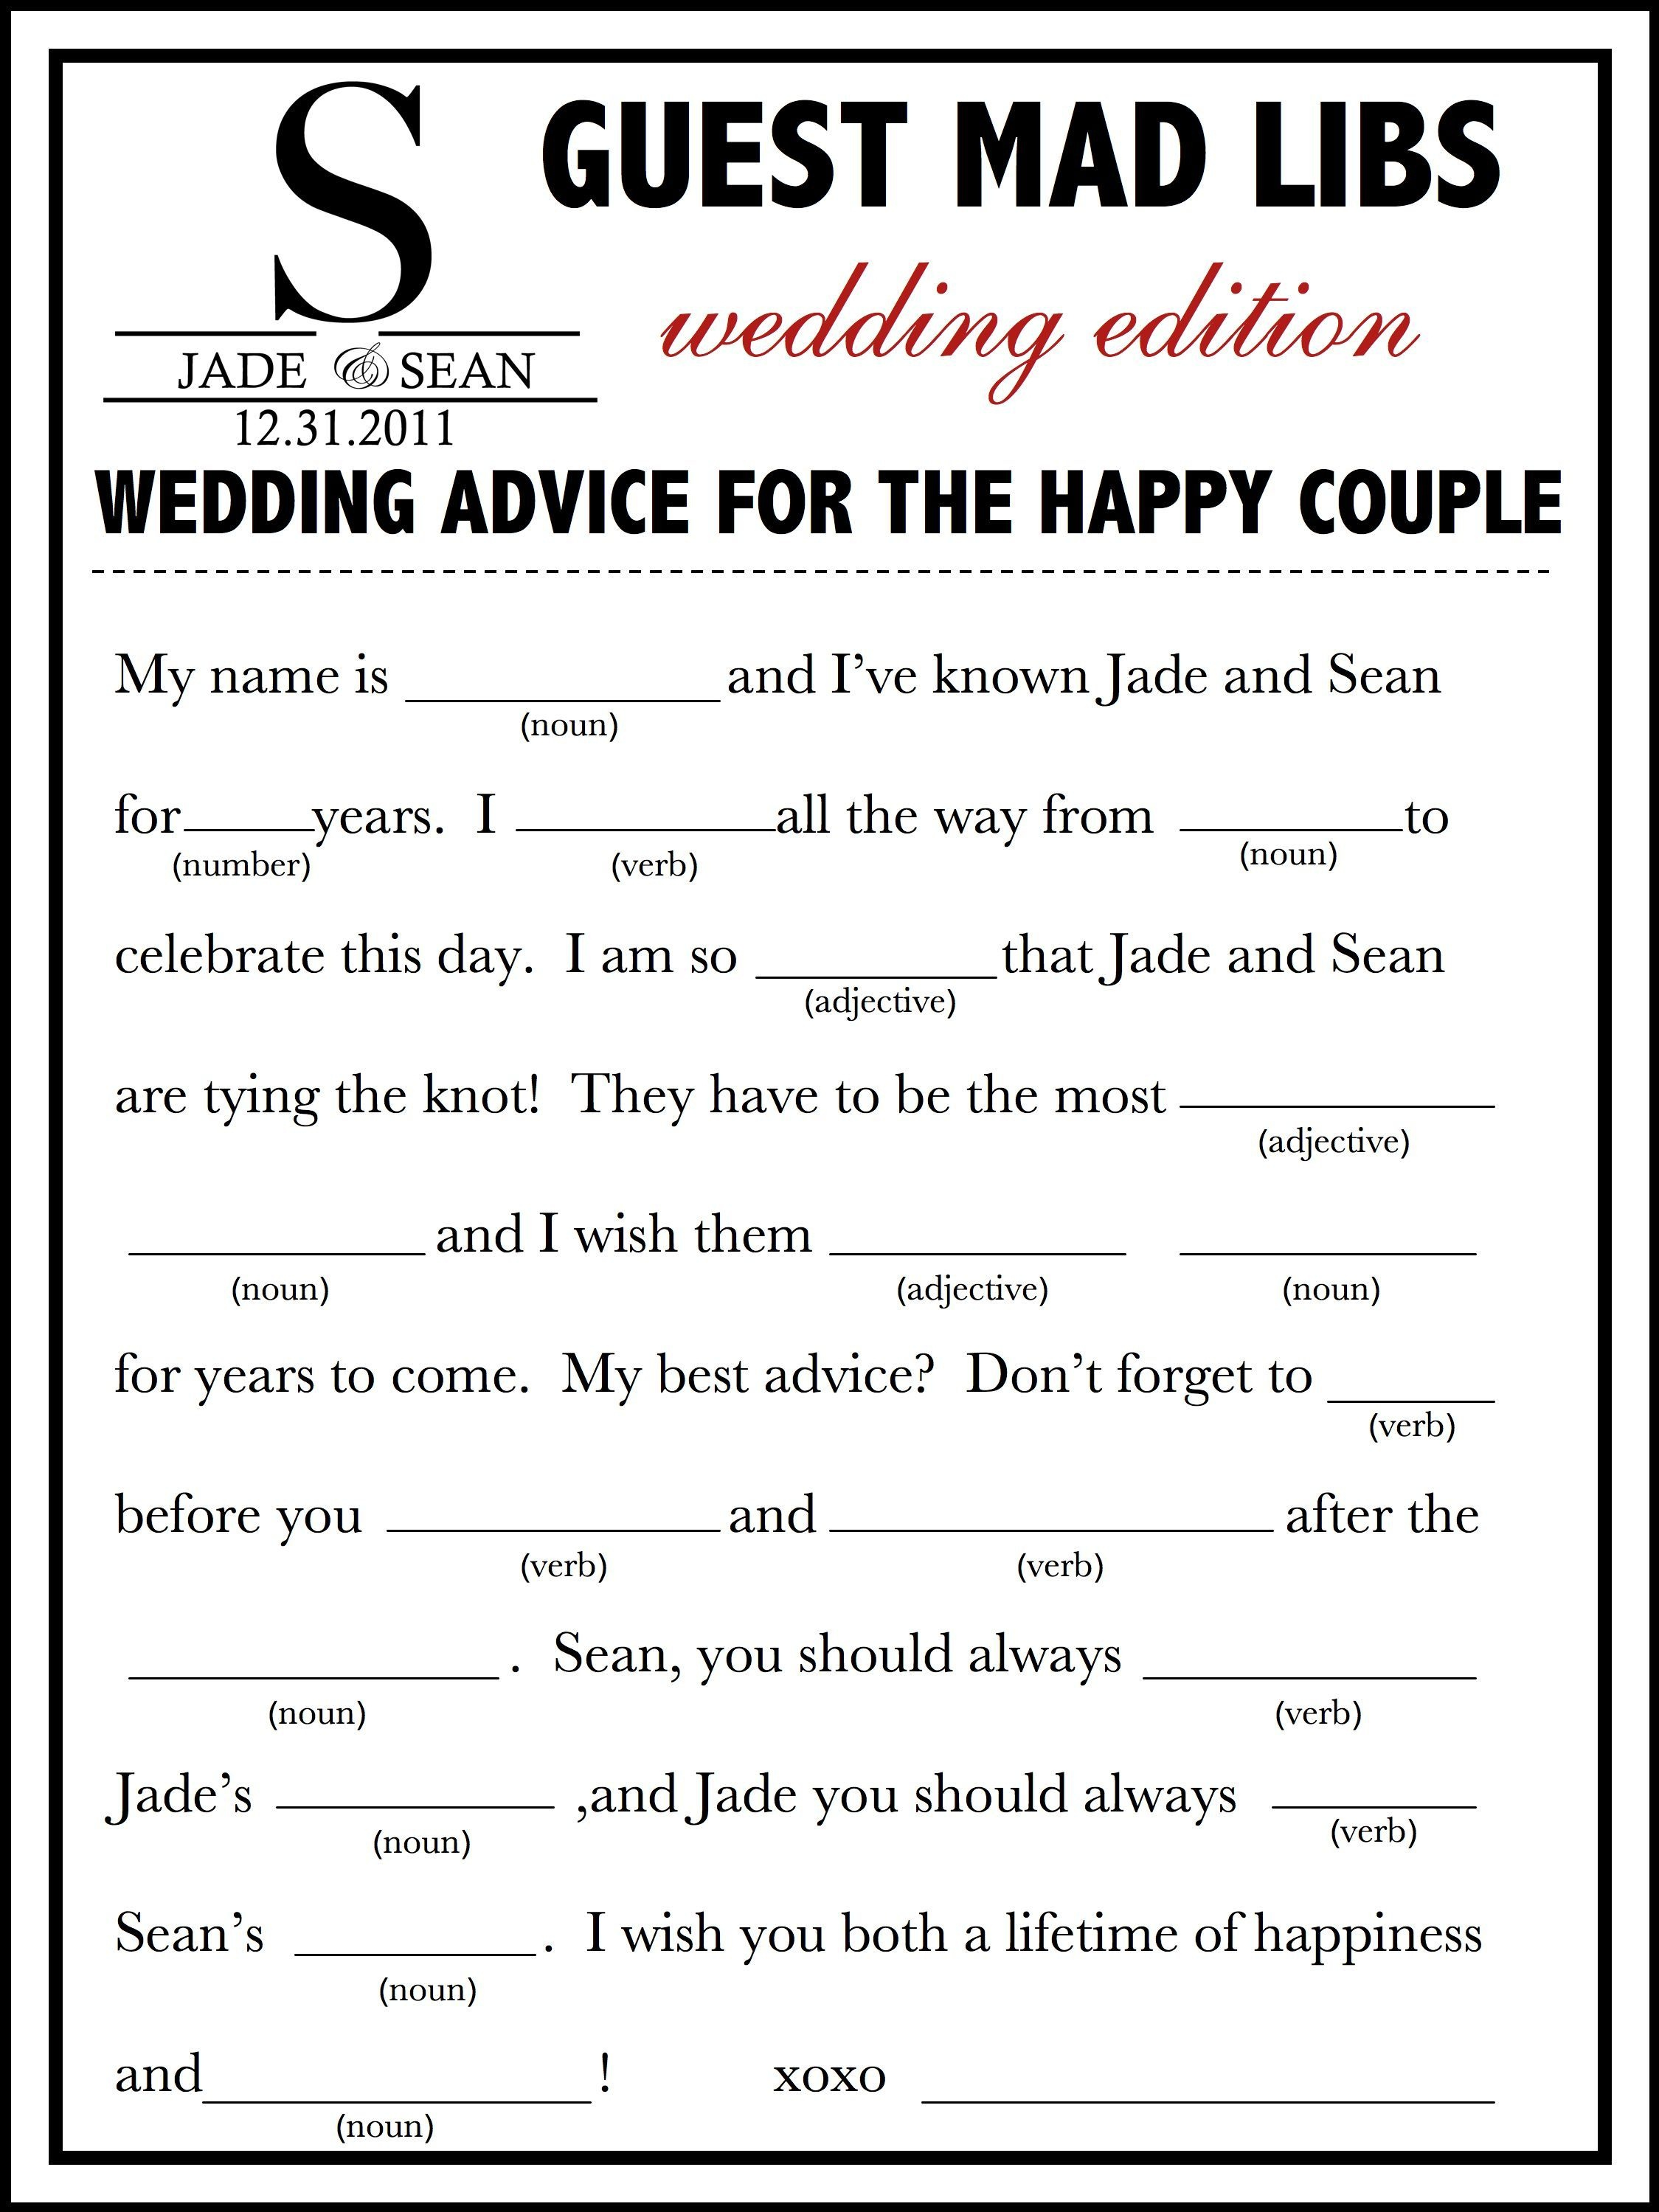 Wedding Mad Libs Template Free | Fun Unique Guest Book Alternative - Free Printable Wedding Mad Libs